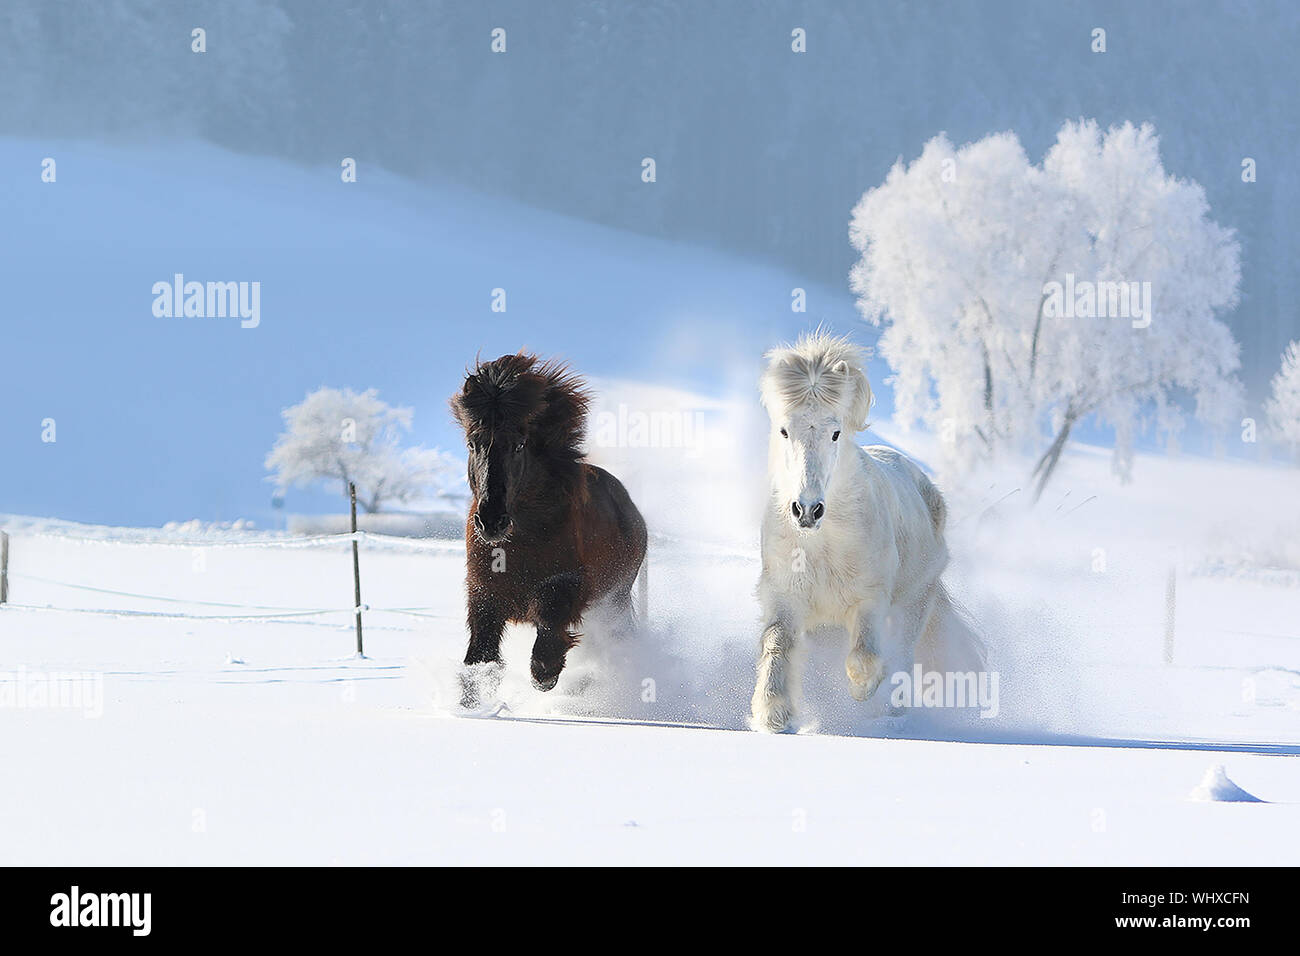 Horses Running In Snow High Resolution Stock Photography And Images Alamy